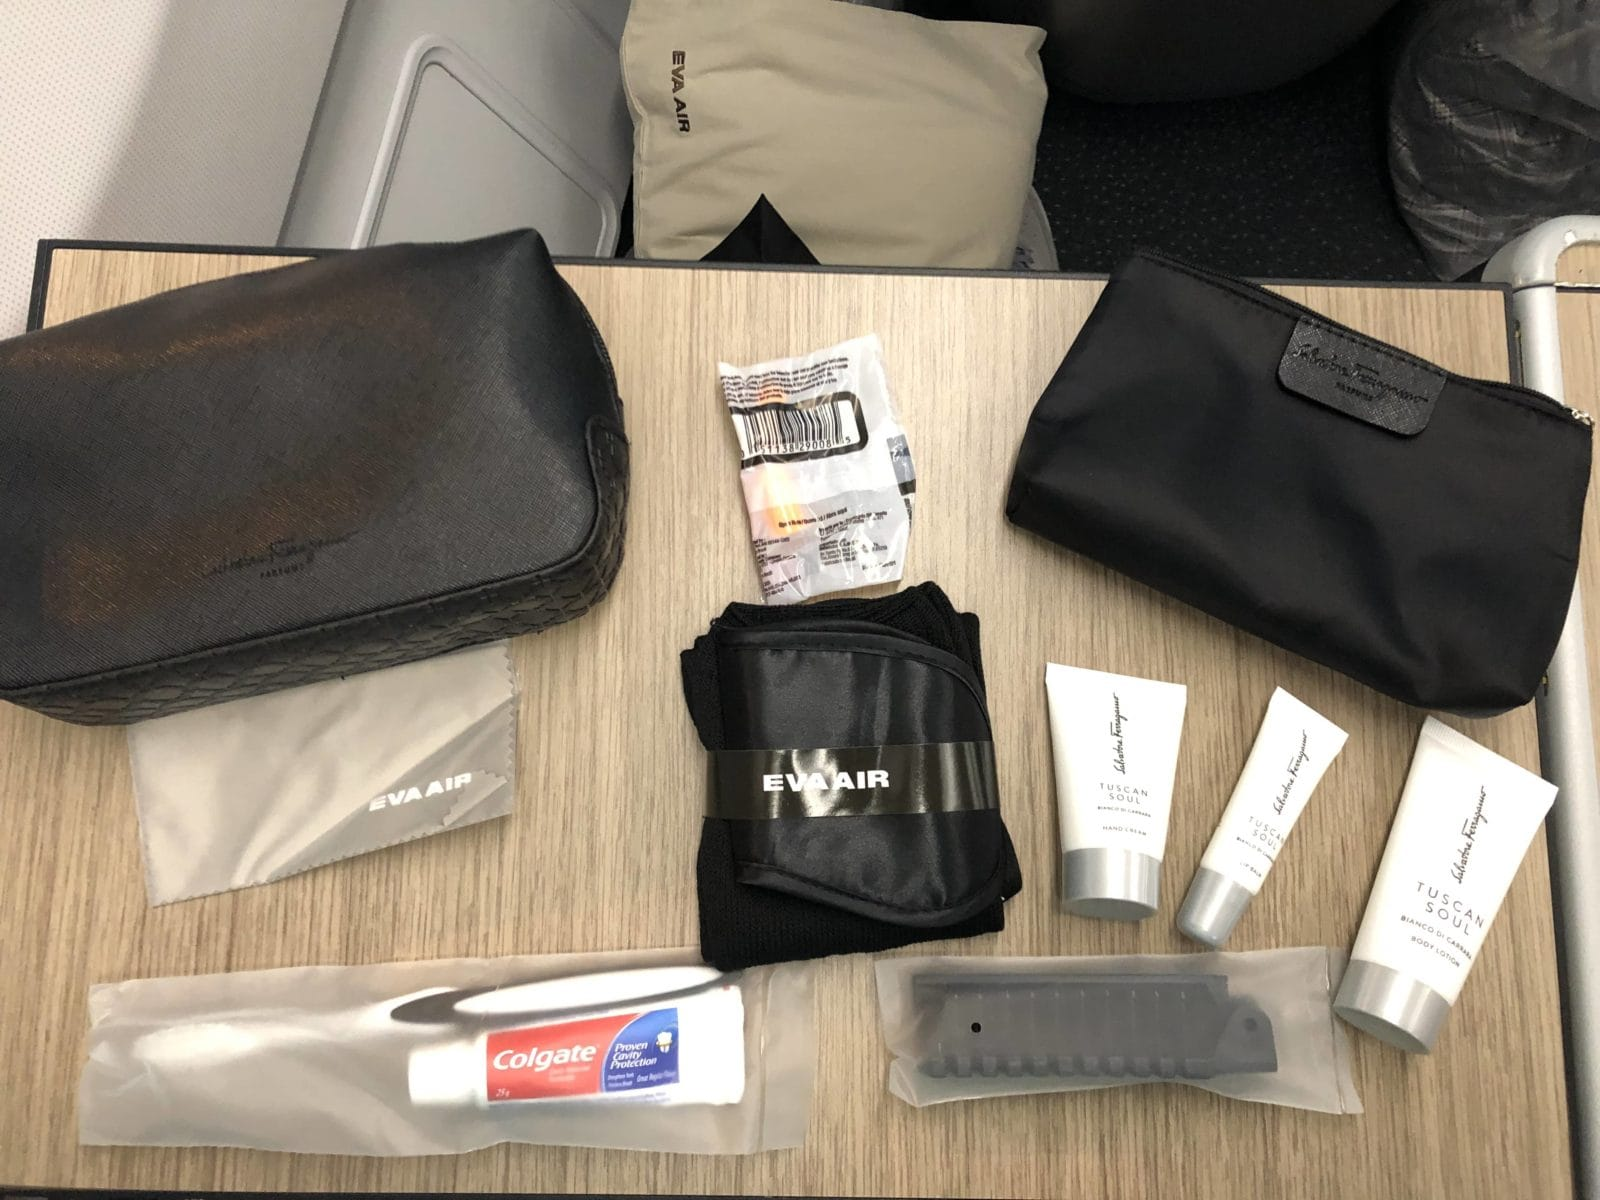 EVA Air Business Class A330-300 Amenity Kit ausgepackt